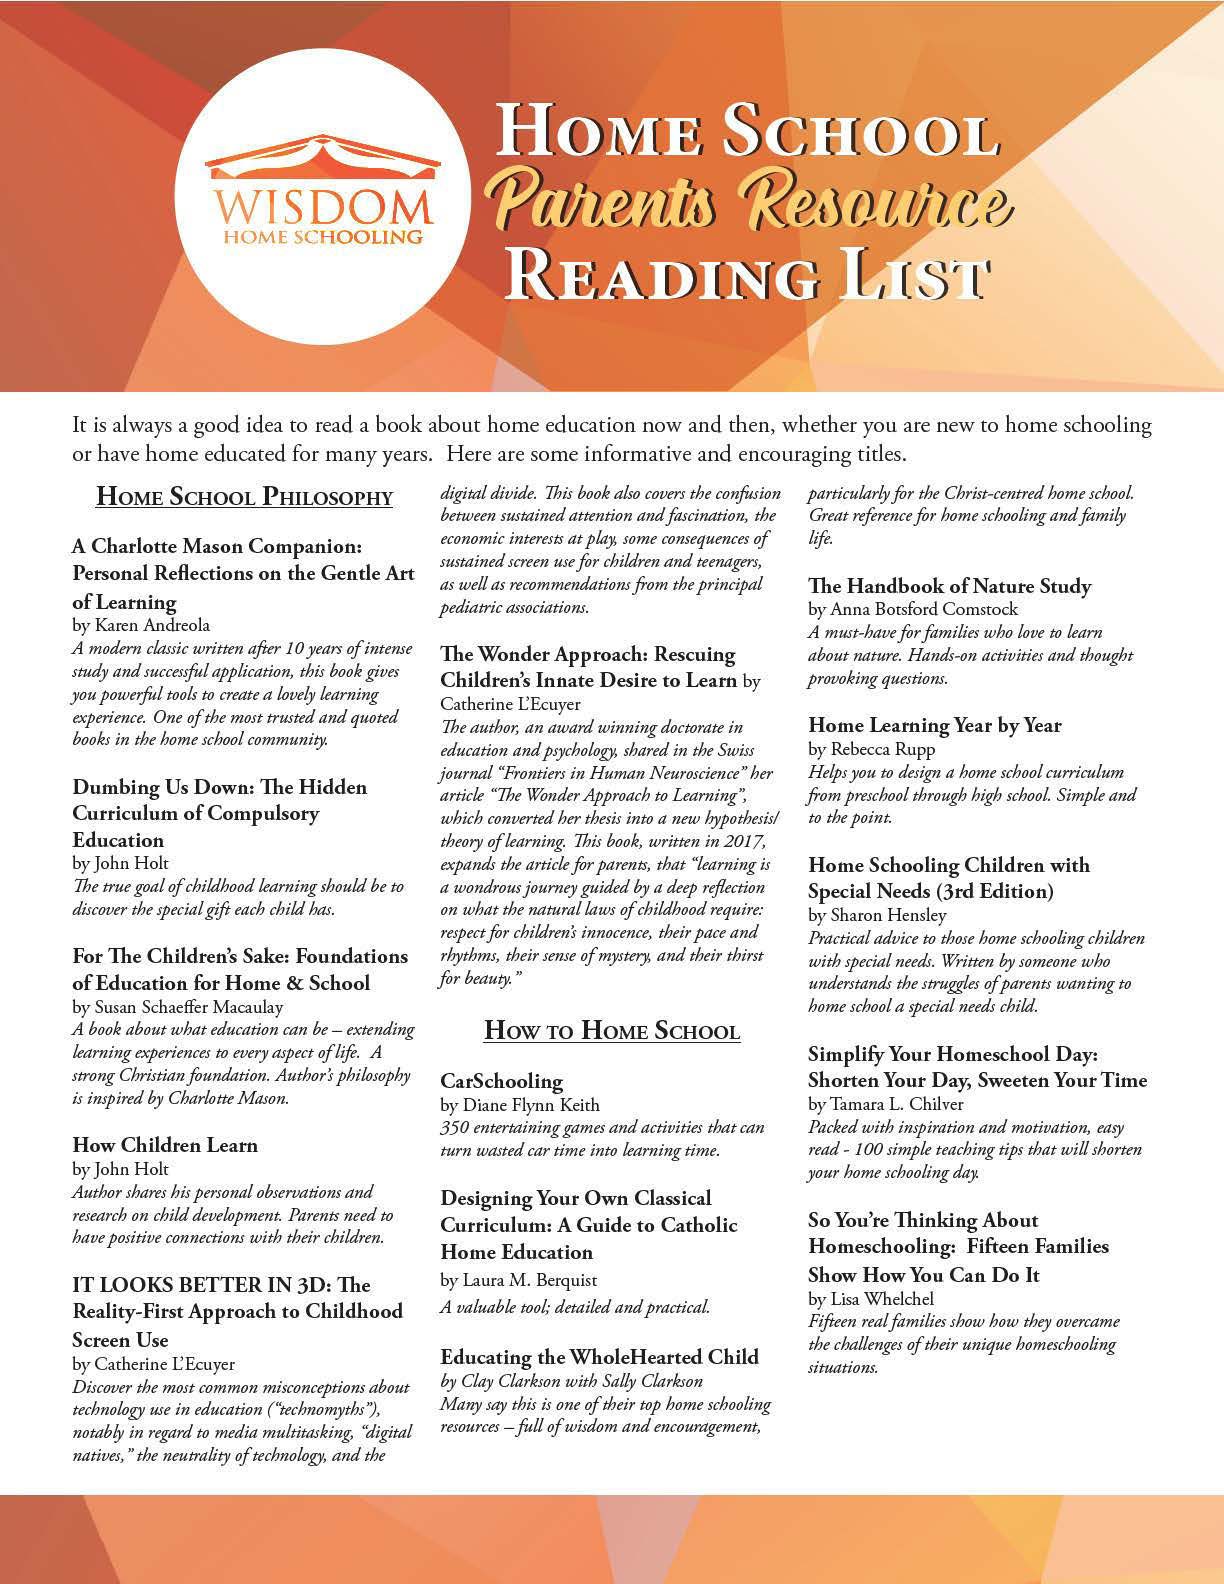 ParentReadingList Page 1